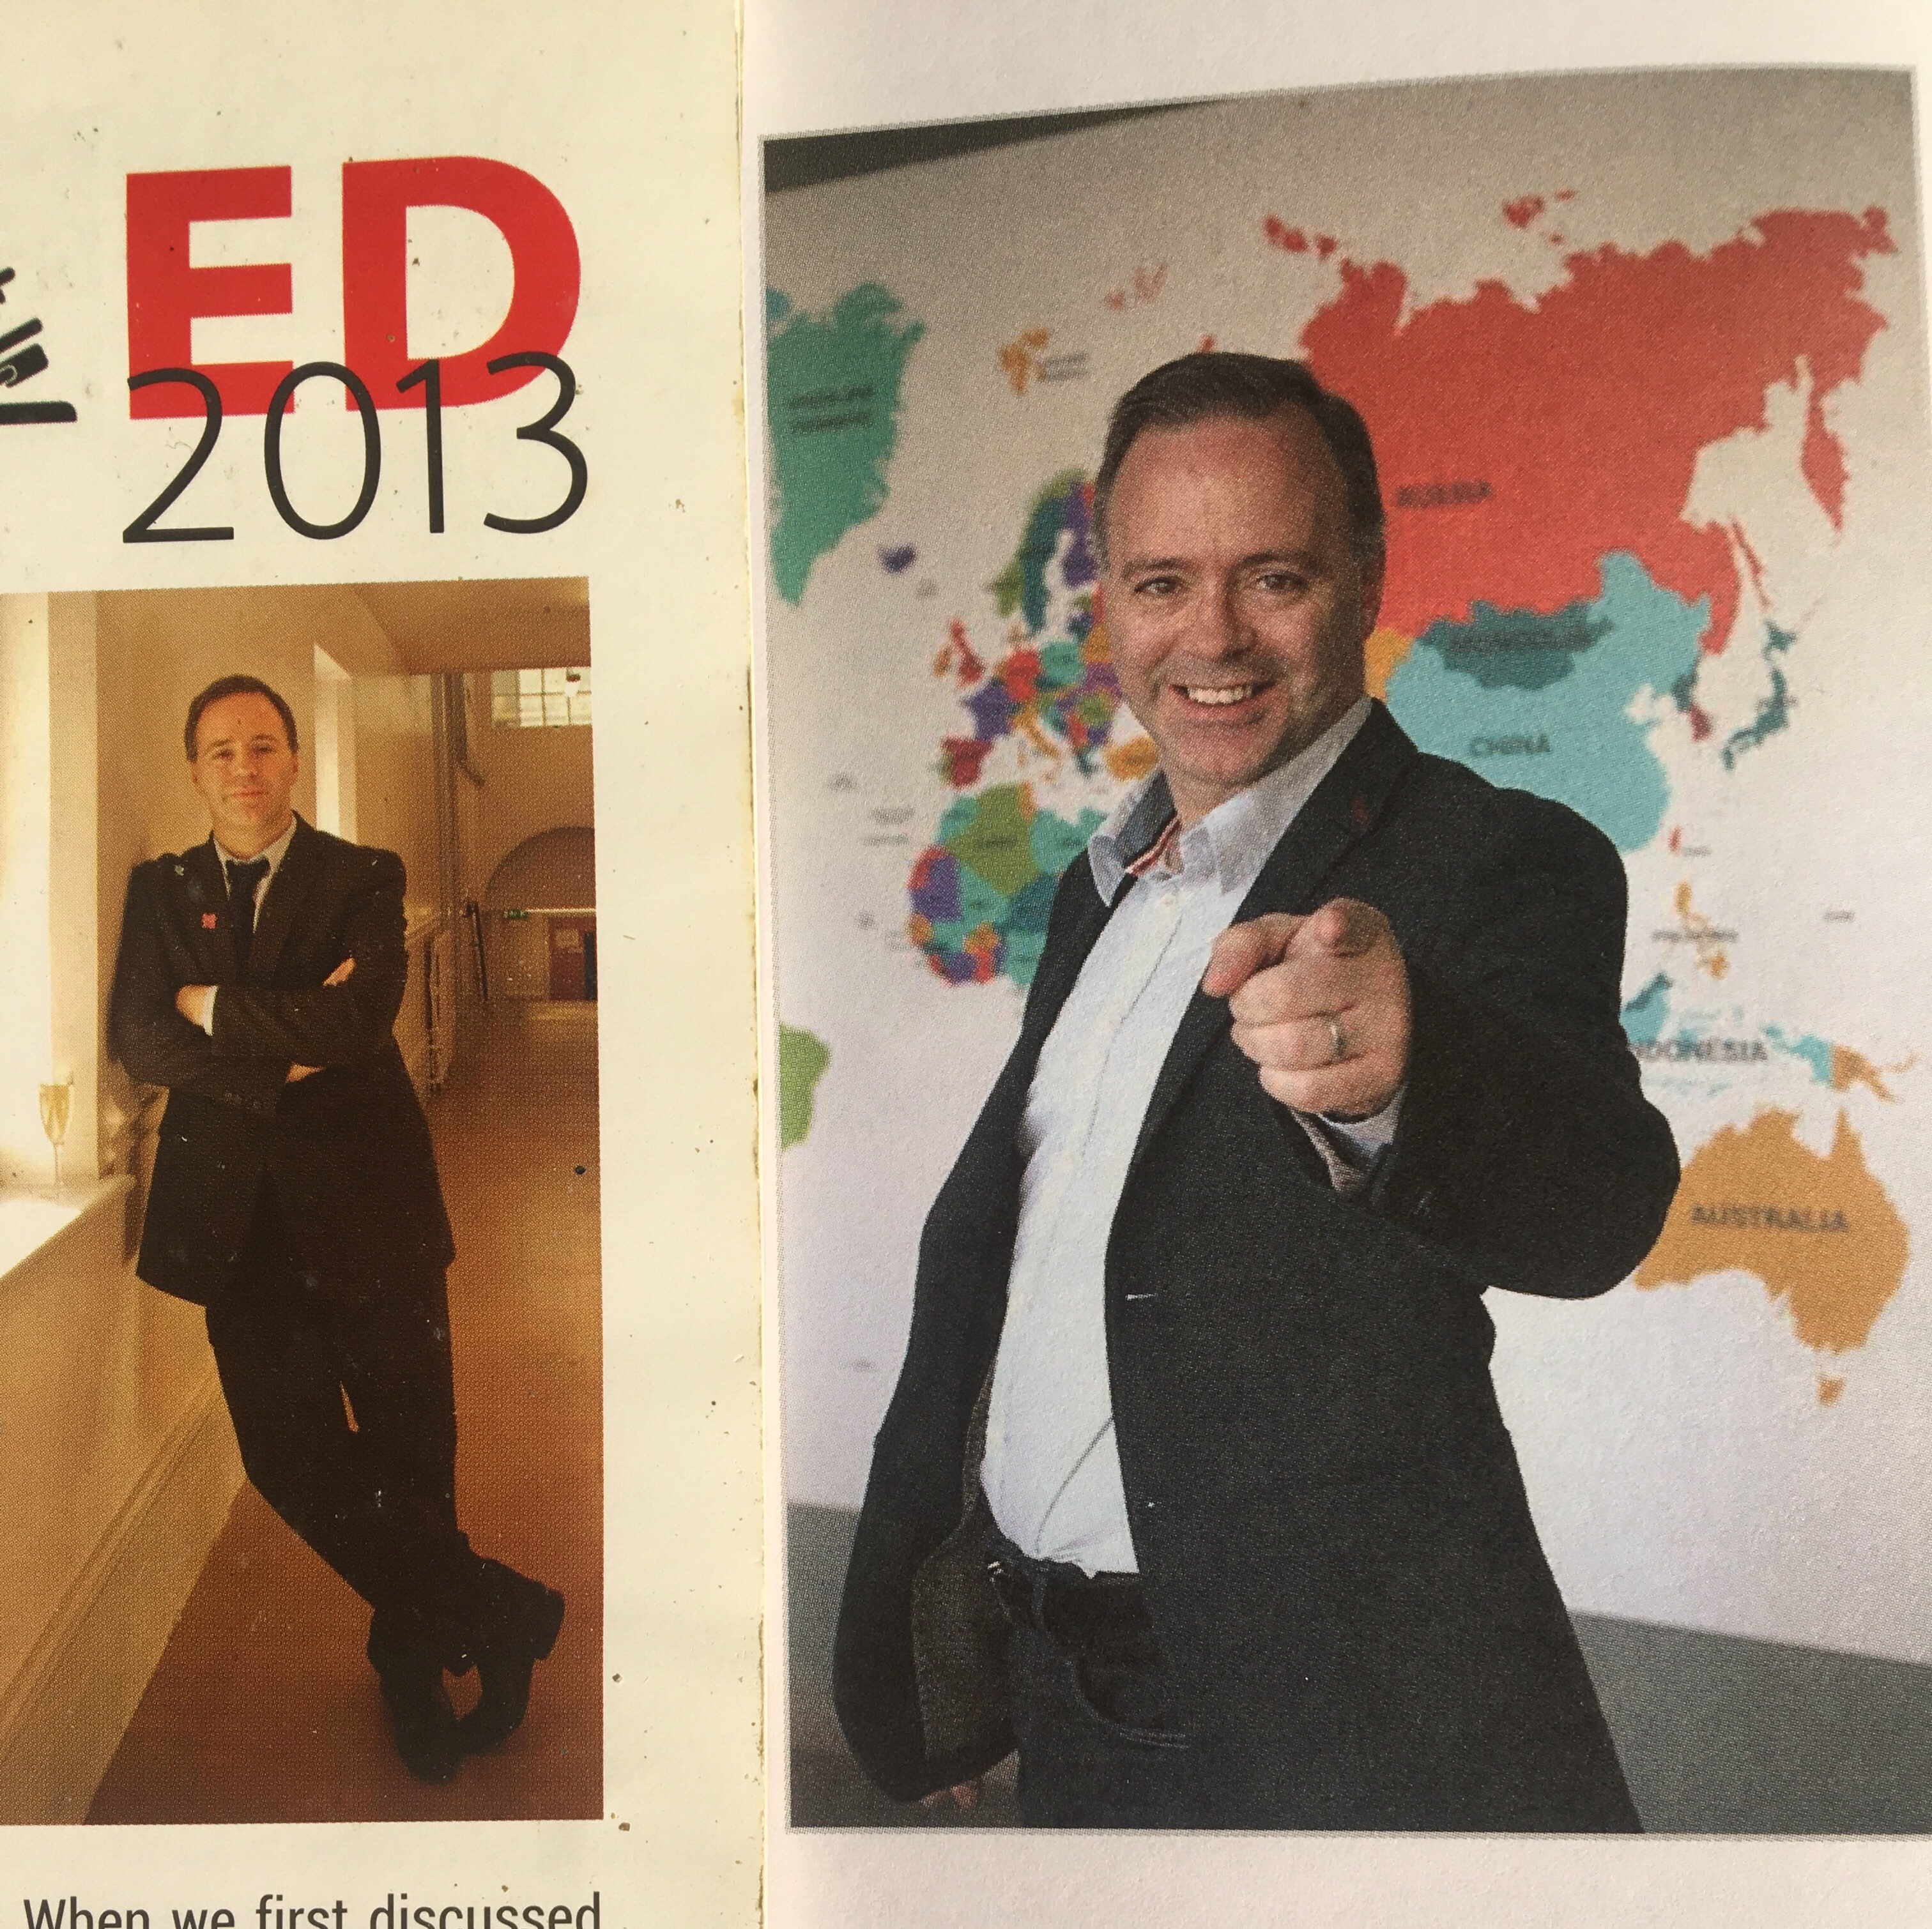 Why @researchEd1 is so brilliant. And necessary.